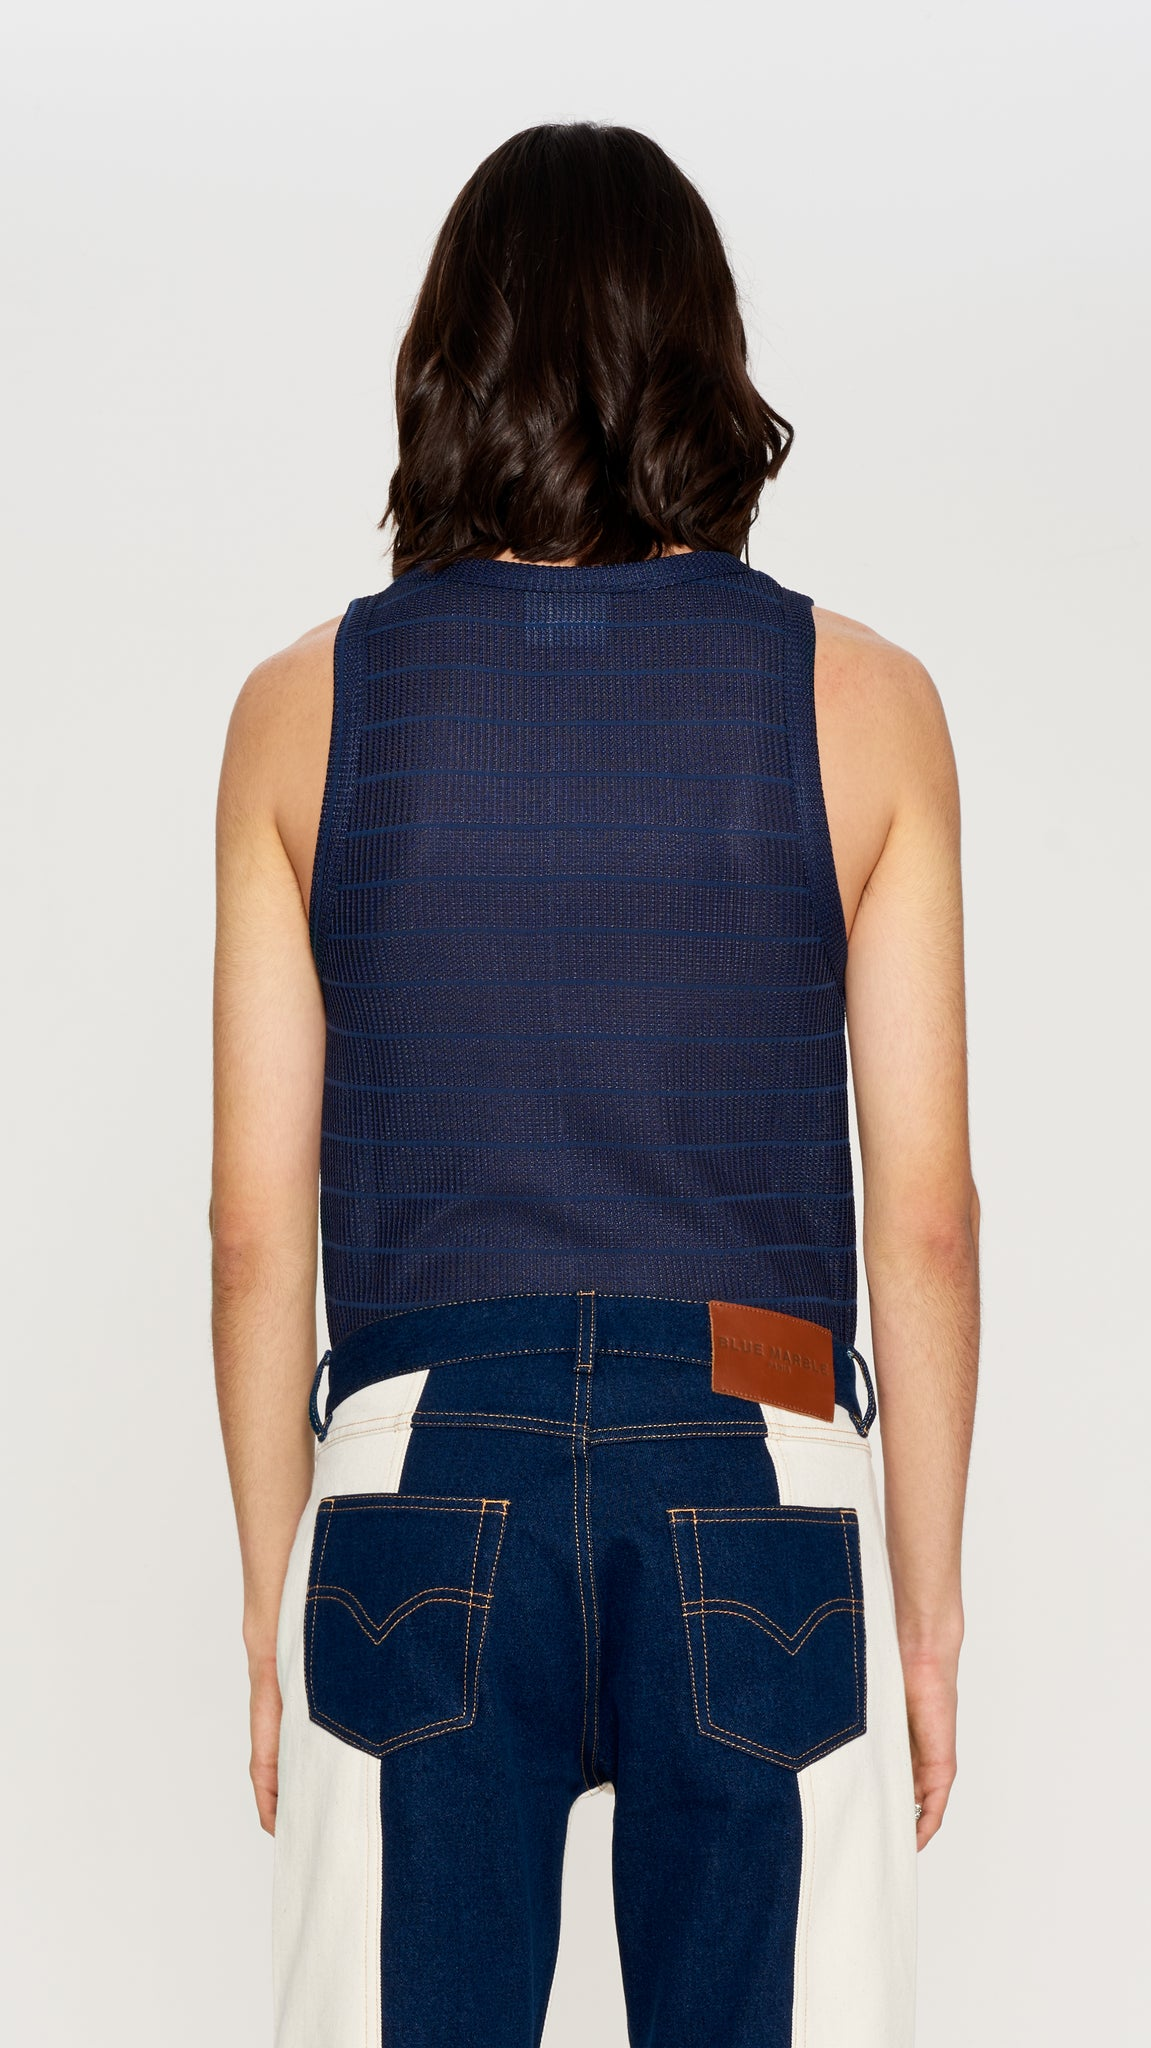 Navy stretch knited mesh tank top